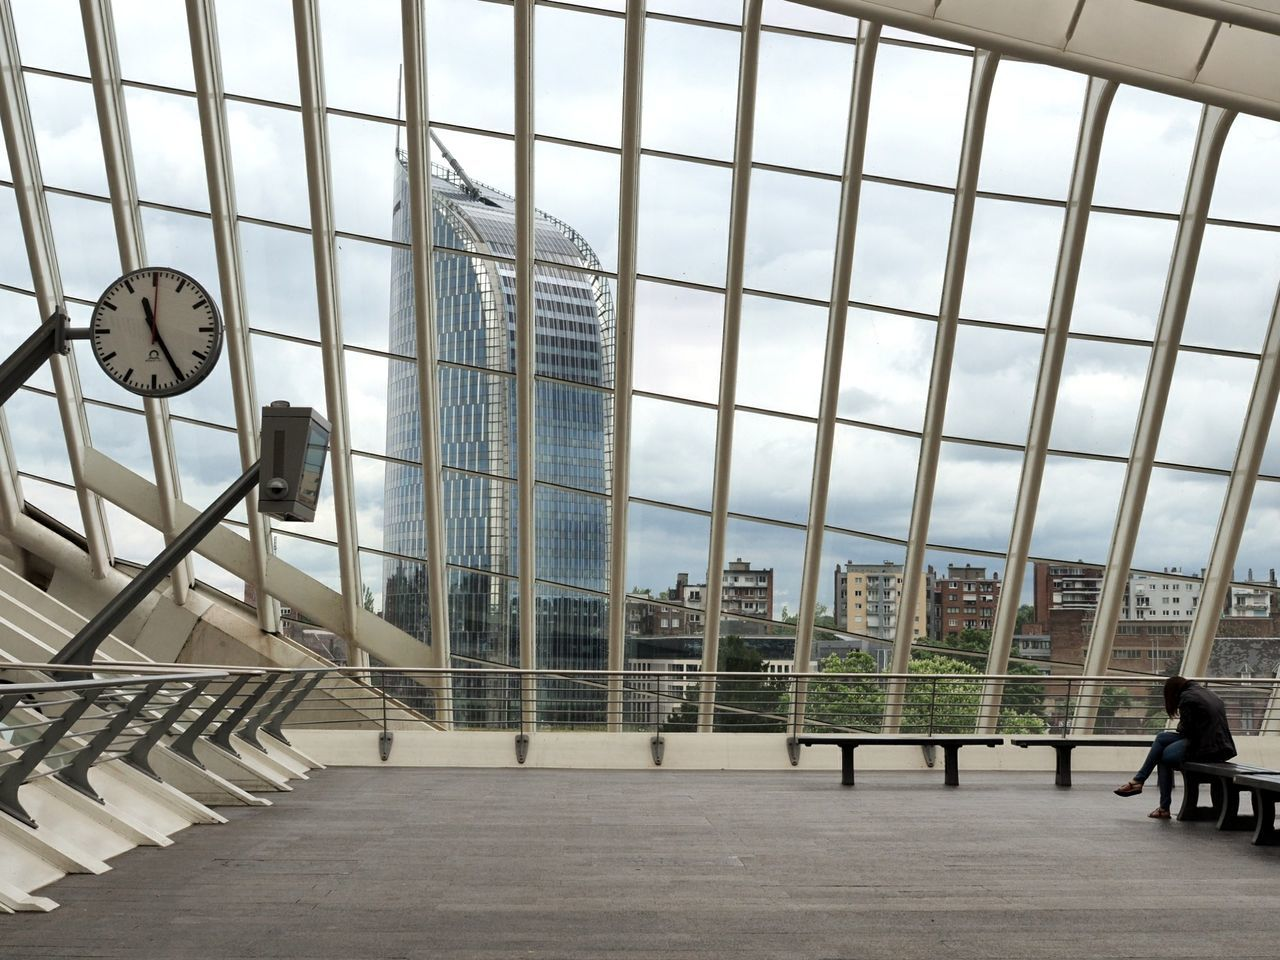 Abwarten Architecture Indoors  Modern Business Day City Sky Let's Go. Together. Europe Indoor Photography Inside Photography Lifestyles Rear View Miles Away Streetphotography Streetphoto_color Liège-guillemins Liège Gare Du Tgv Belgium EyeEm Selects